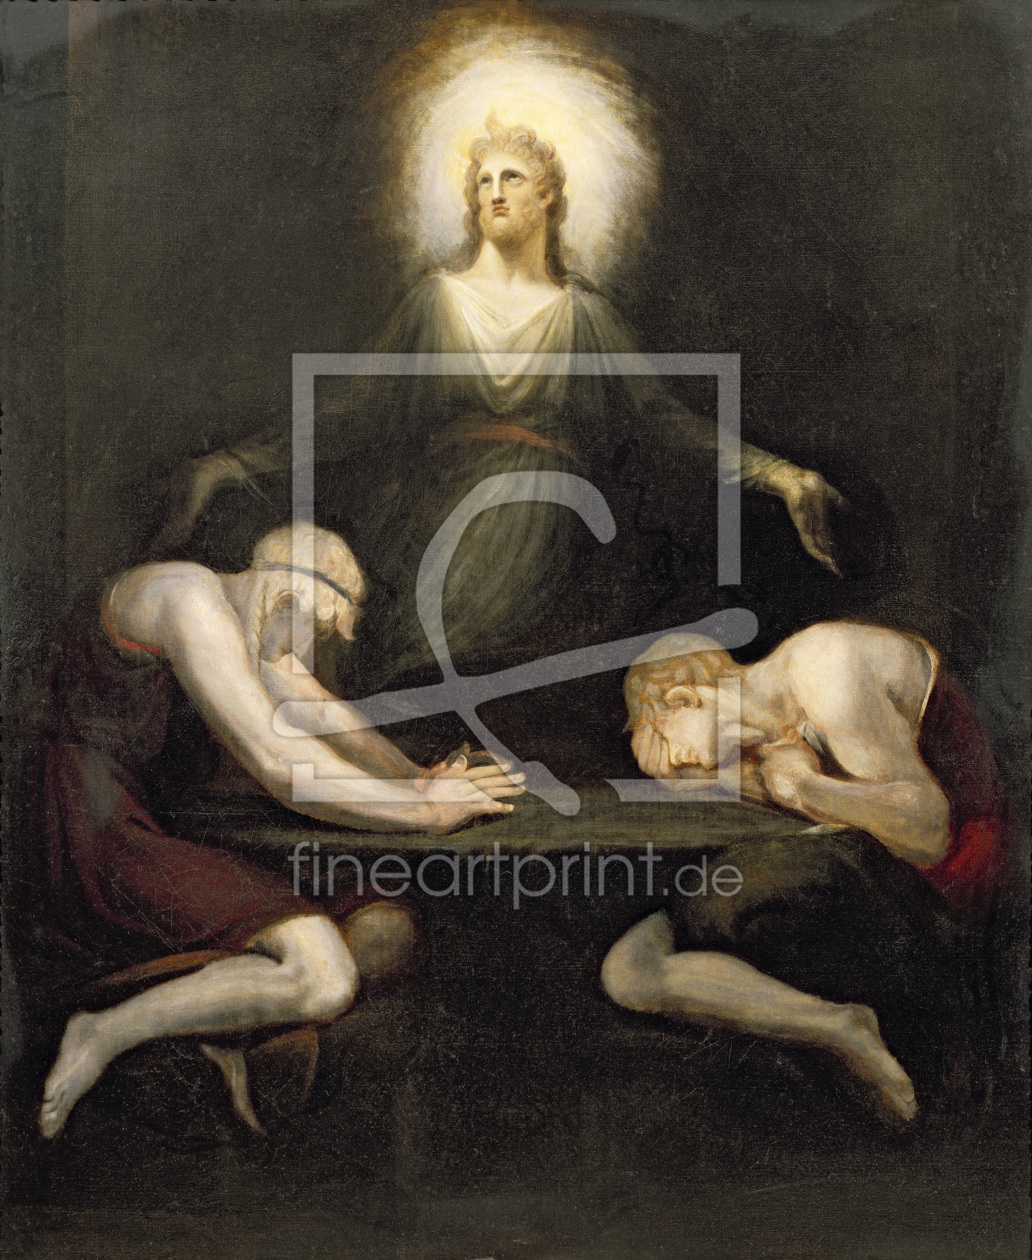 Bild-Nr.: 31000433 The Appearance of Christ at Emmaus, 1792 erstellt von Fuessli, Johann Heinrich th.y.